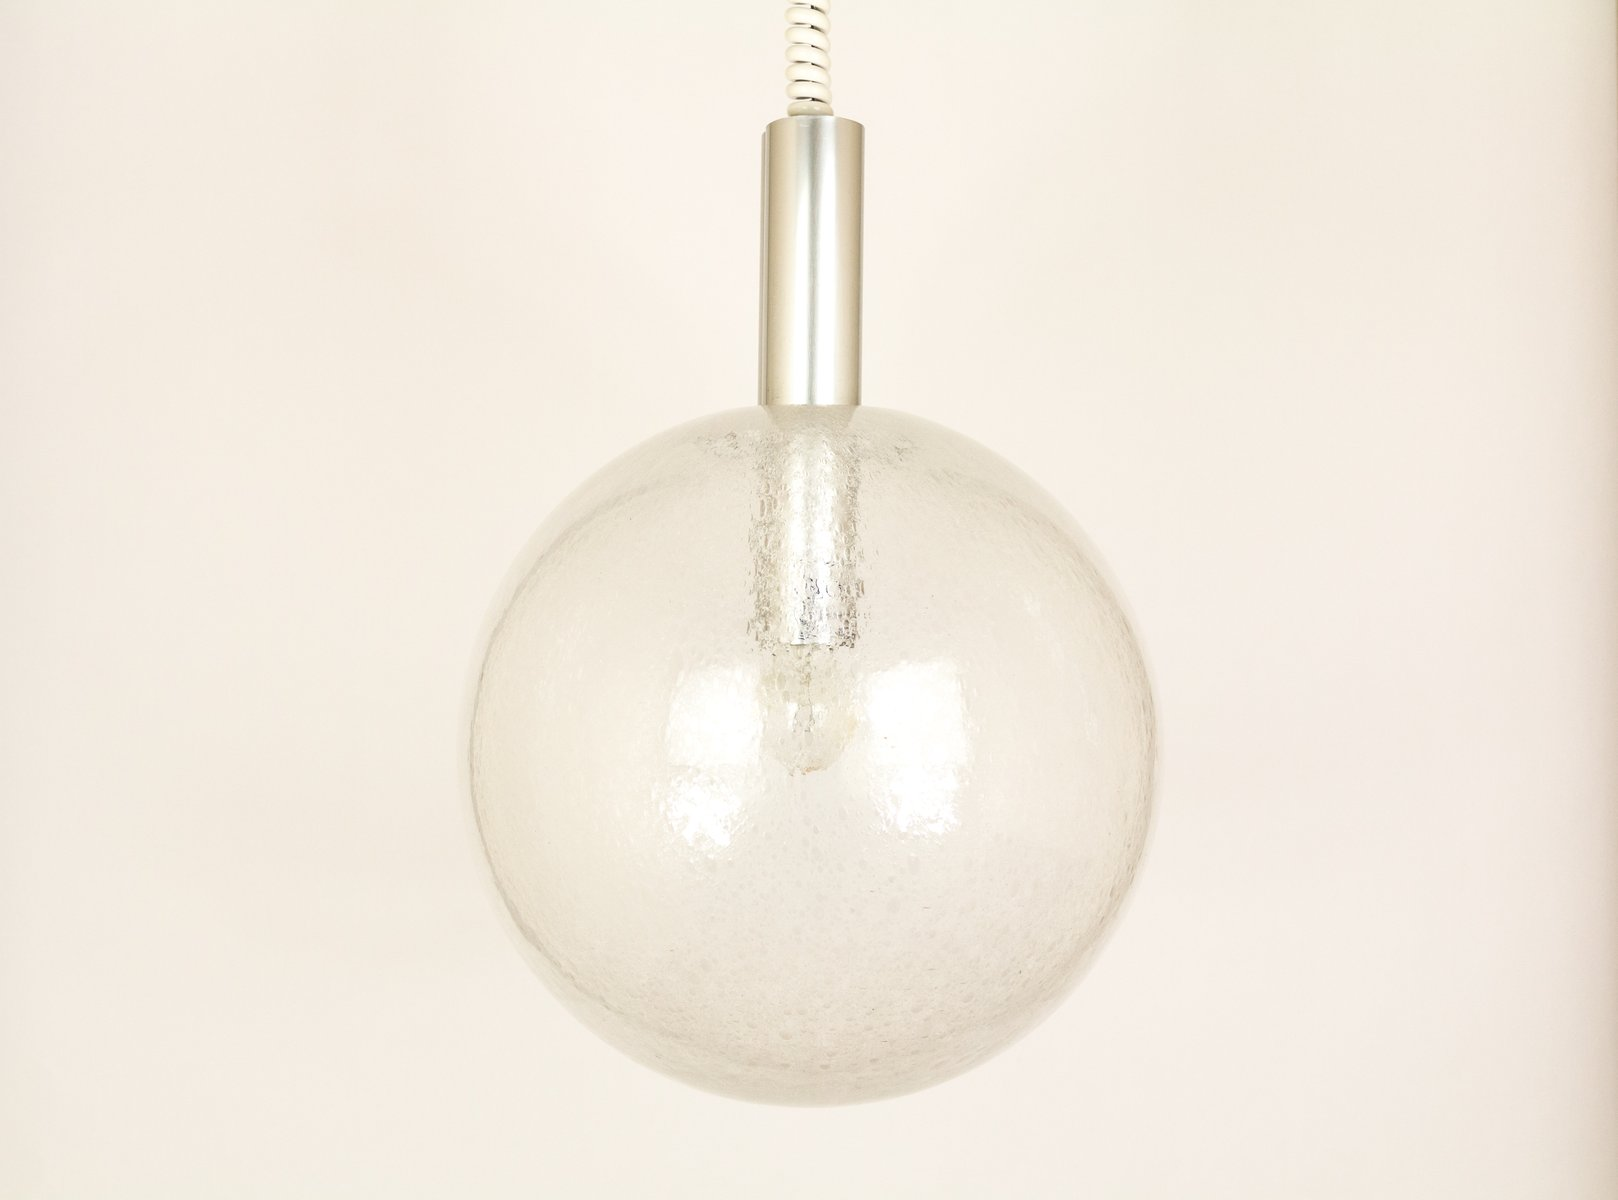 Sfera Pendant by Afra   Tobia Scarpa for Flos 908ab44a770